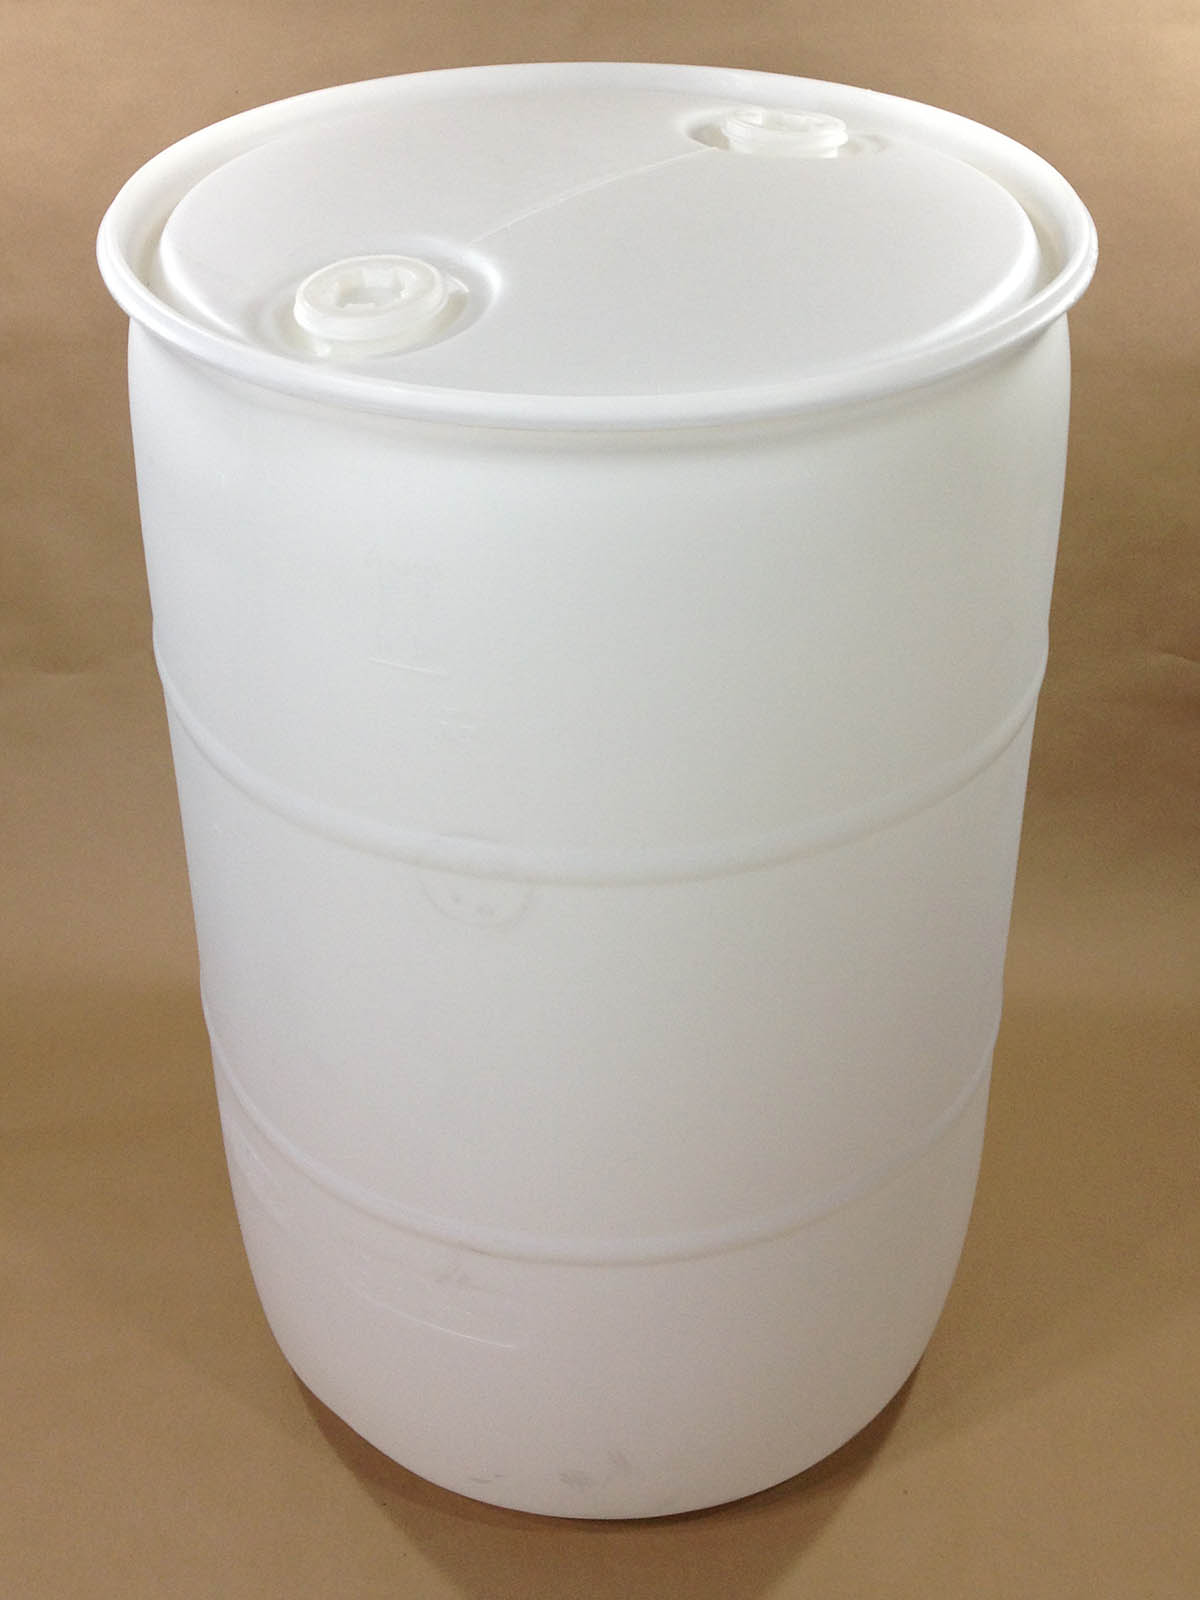 55 Gallon Natural Plastic Drum Spp055cn00ul1 Yankee